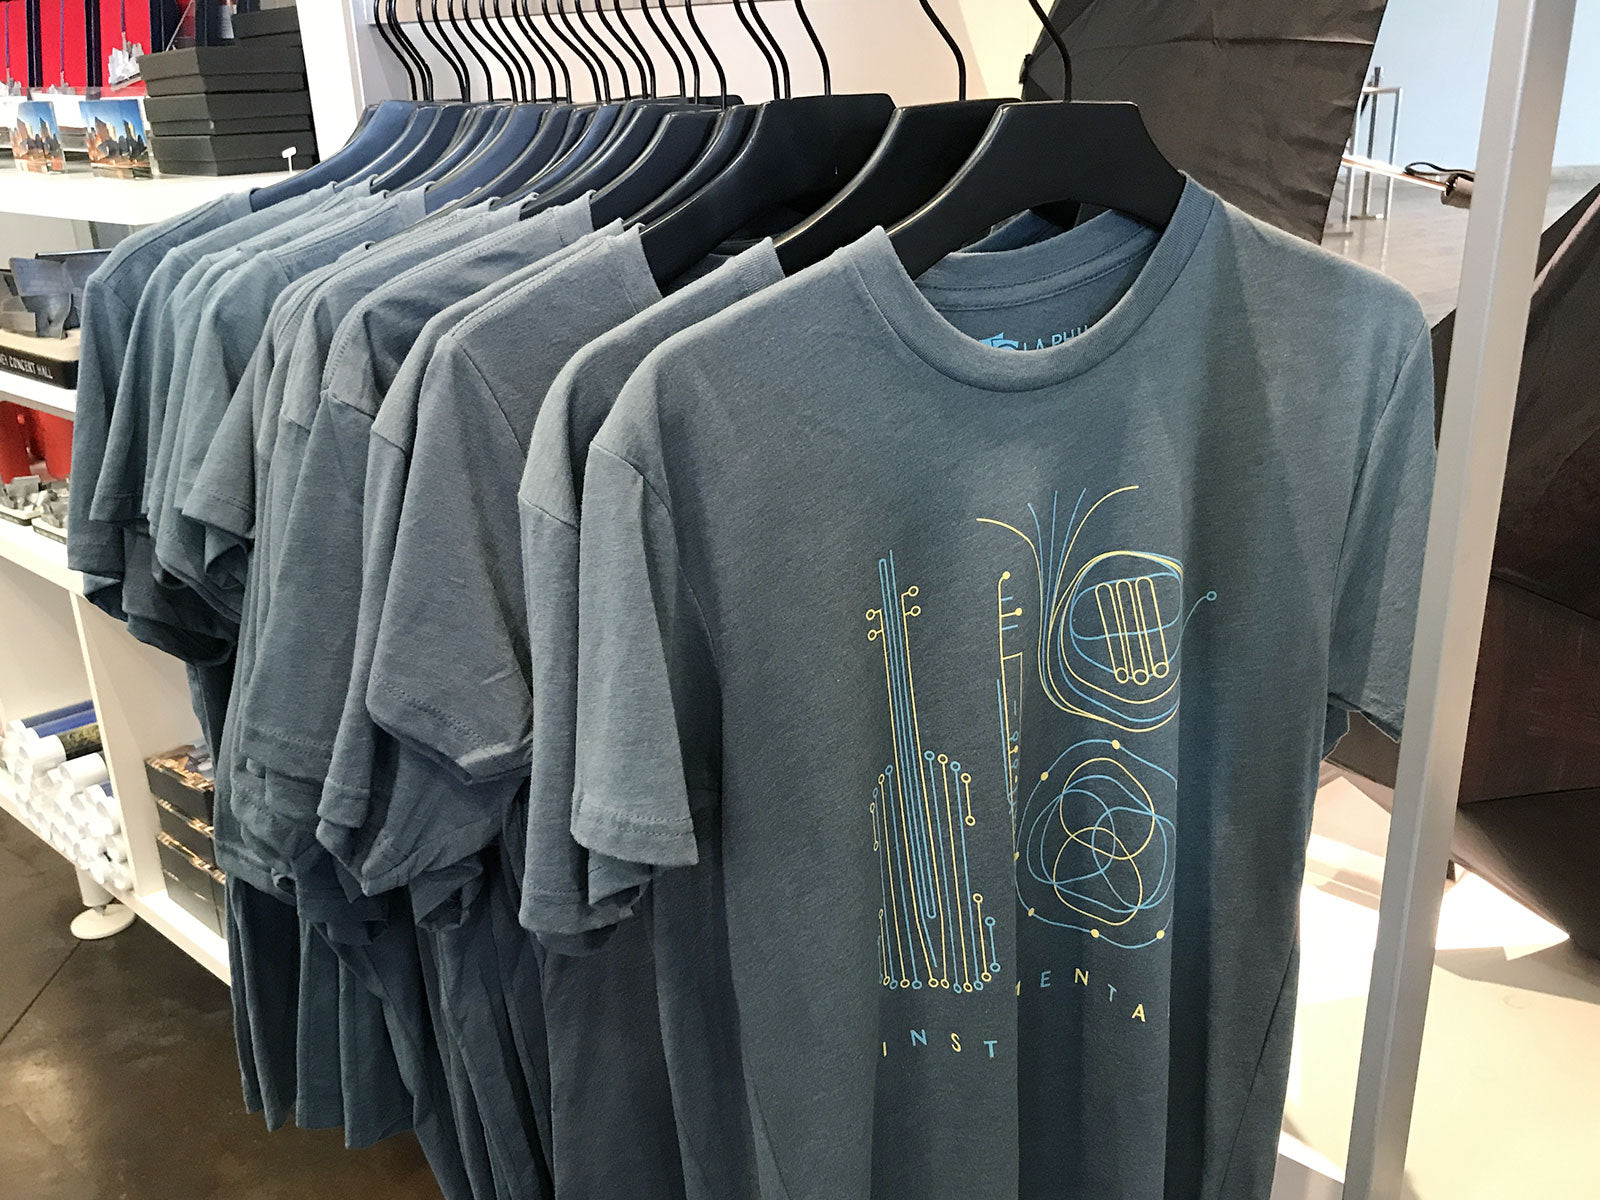 Story Spark designed t-shirts on the rack at the LA Phil Store